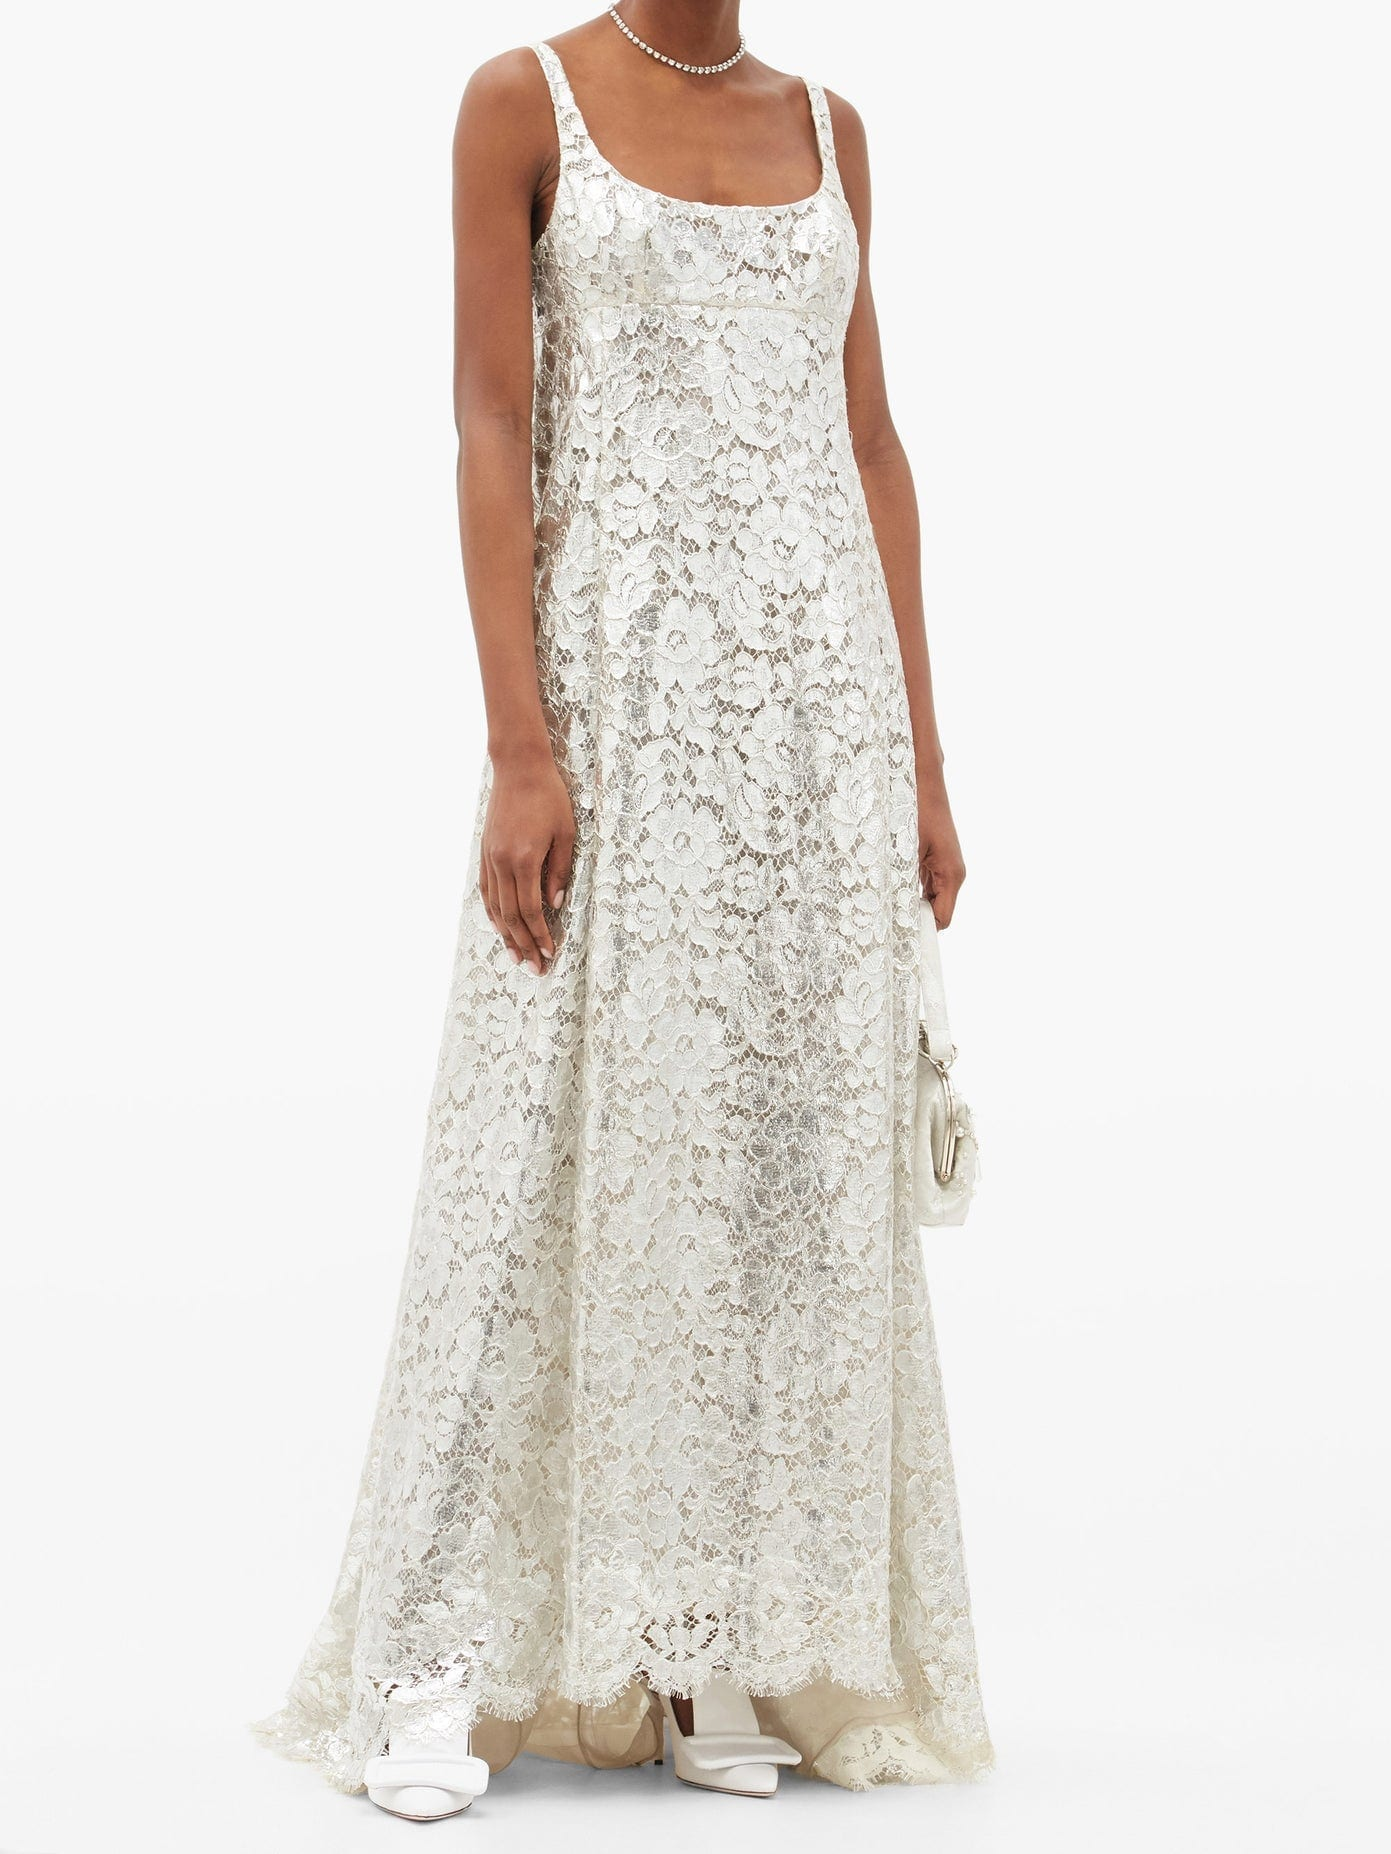 MARC JACOBS RUNWAY Scoop-neck Cape-back Metallic Lace Gown